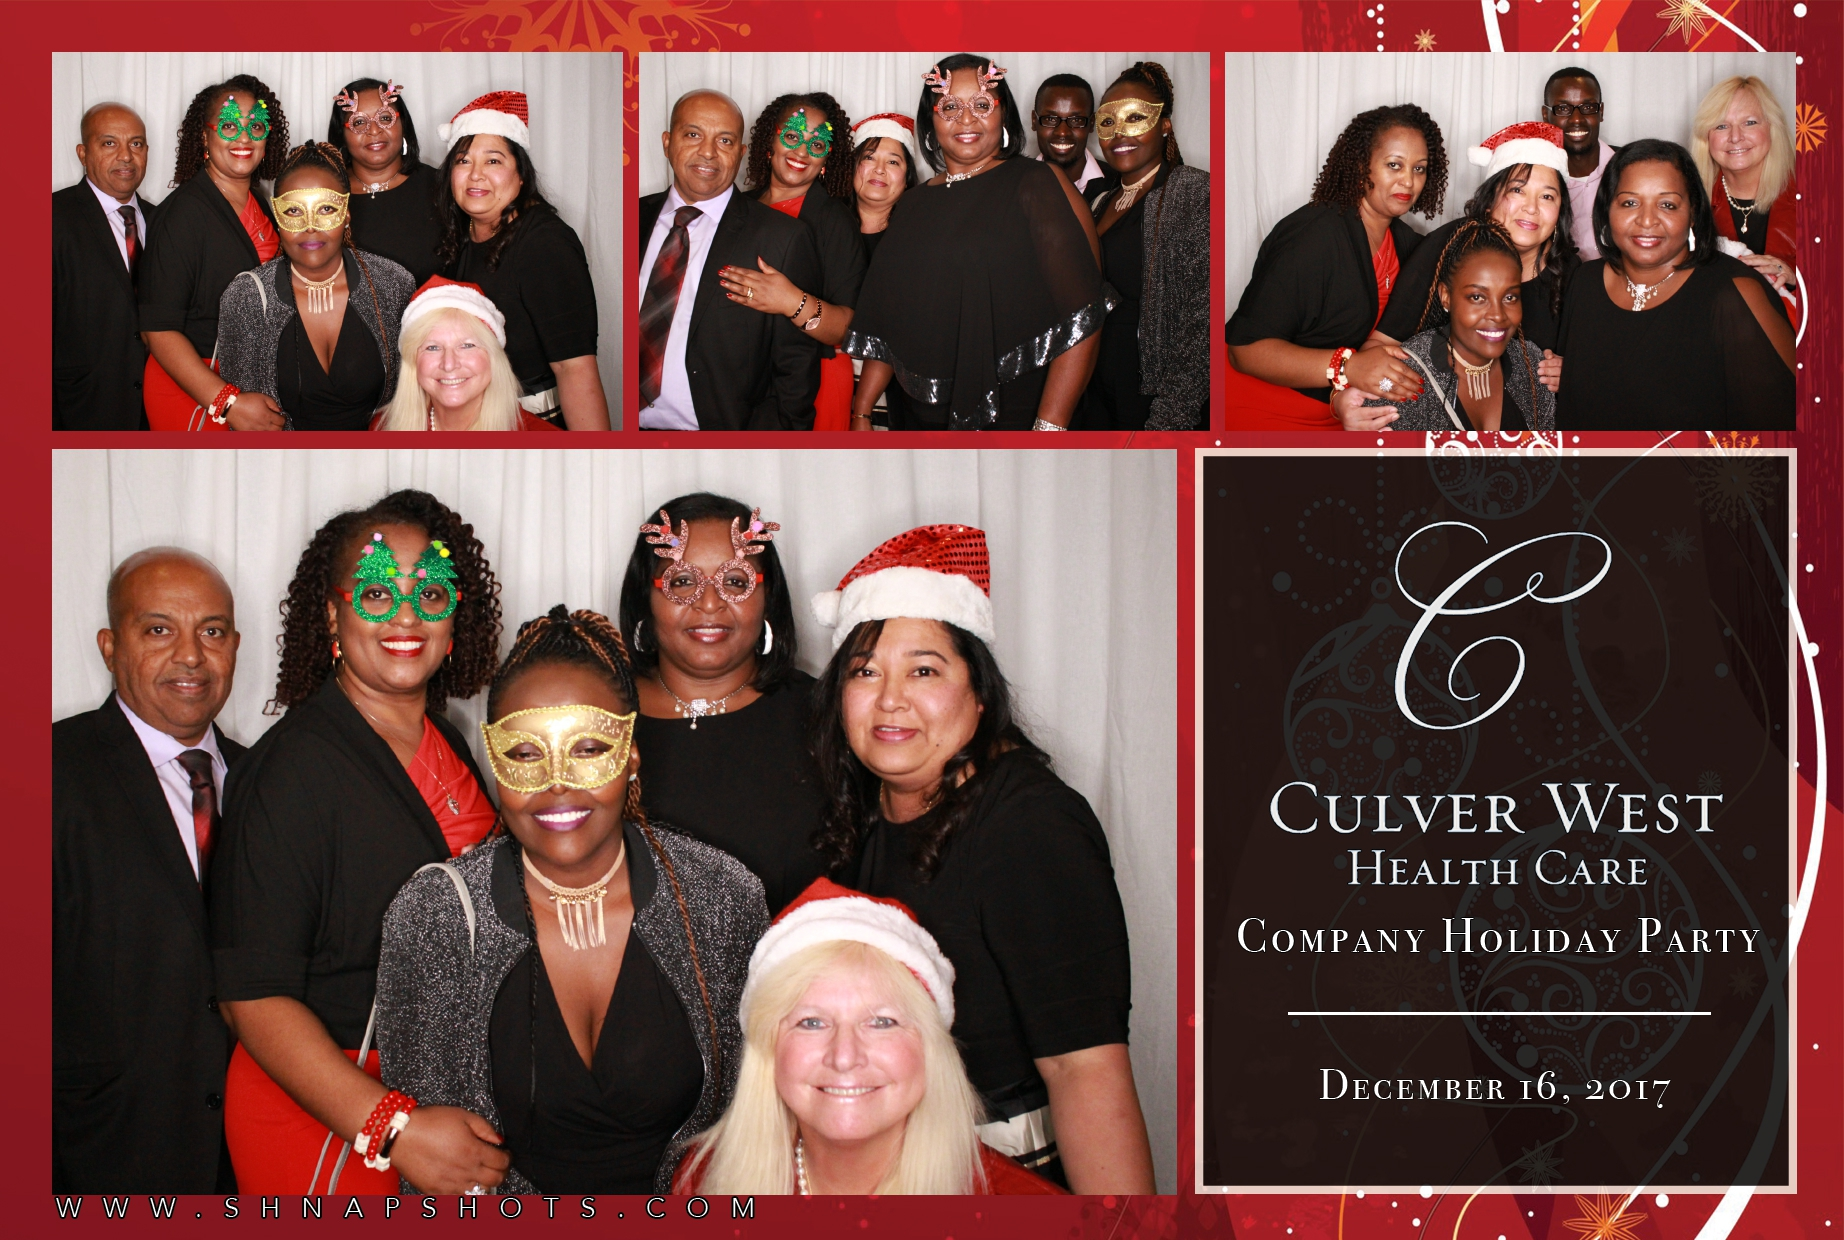 Culver West Health Care Holiday Party